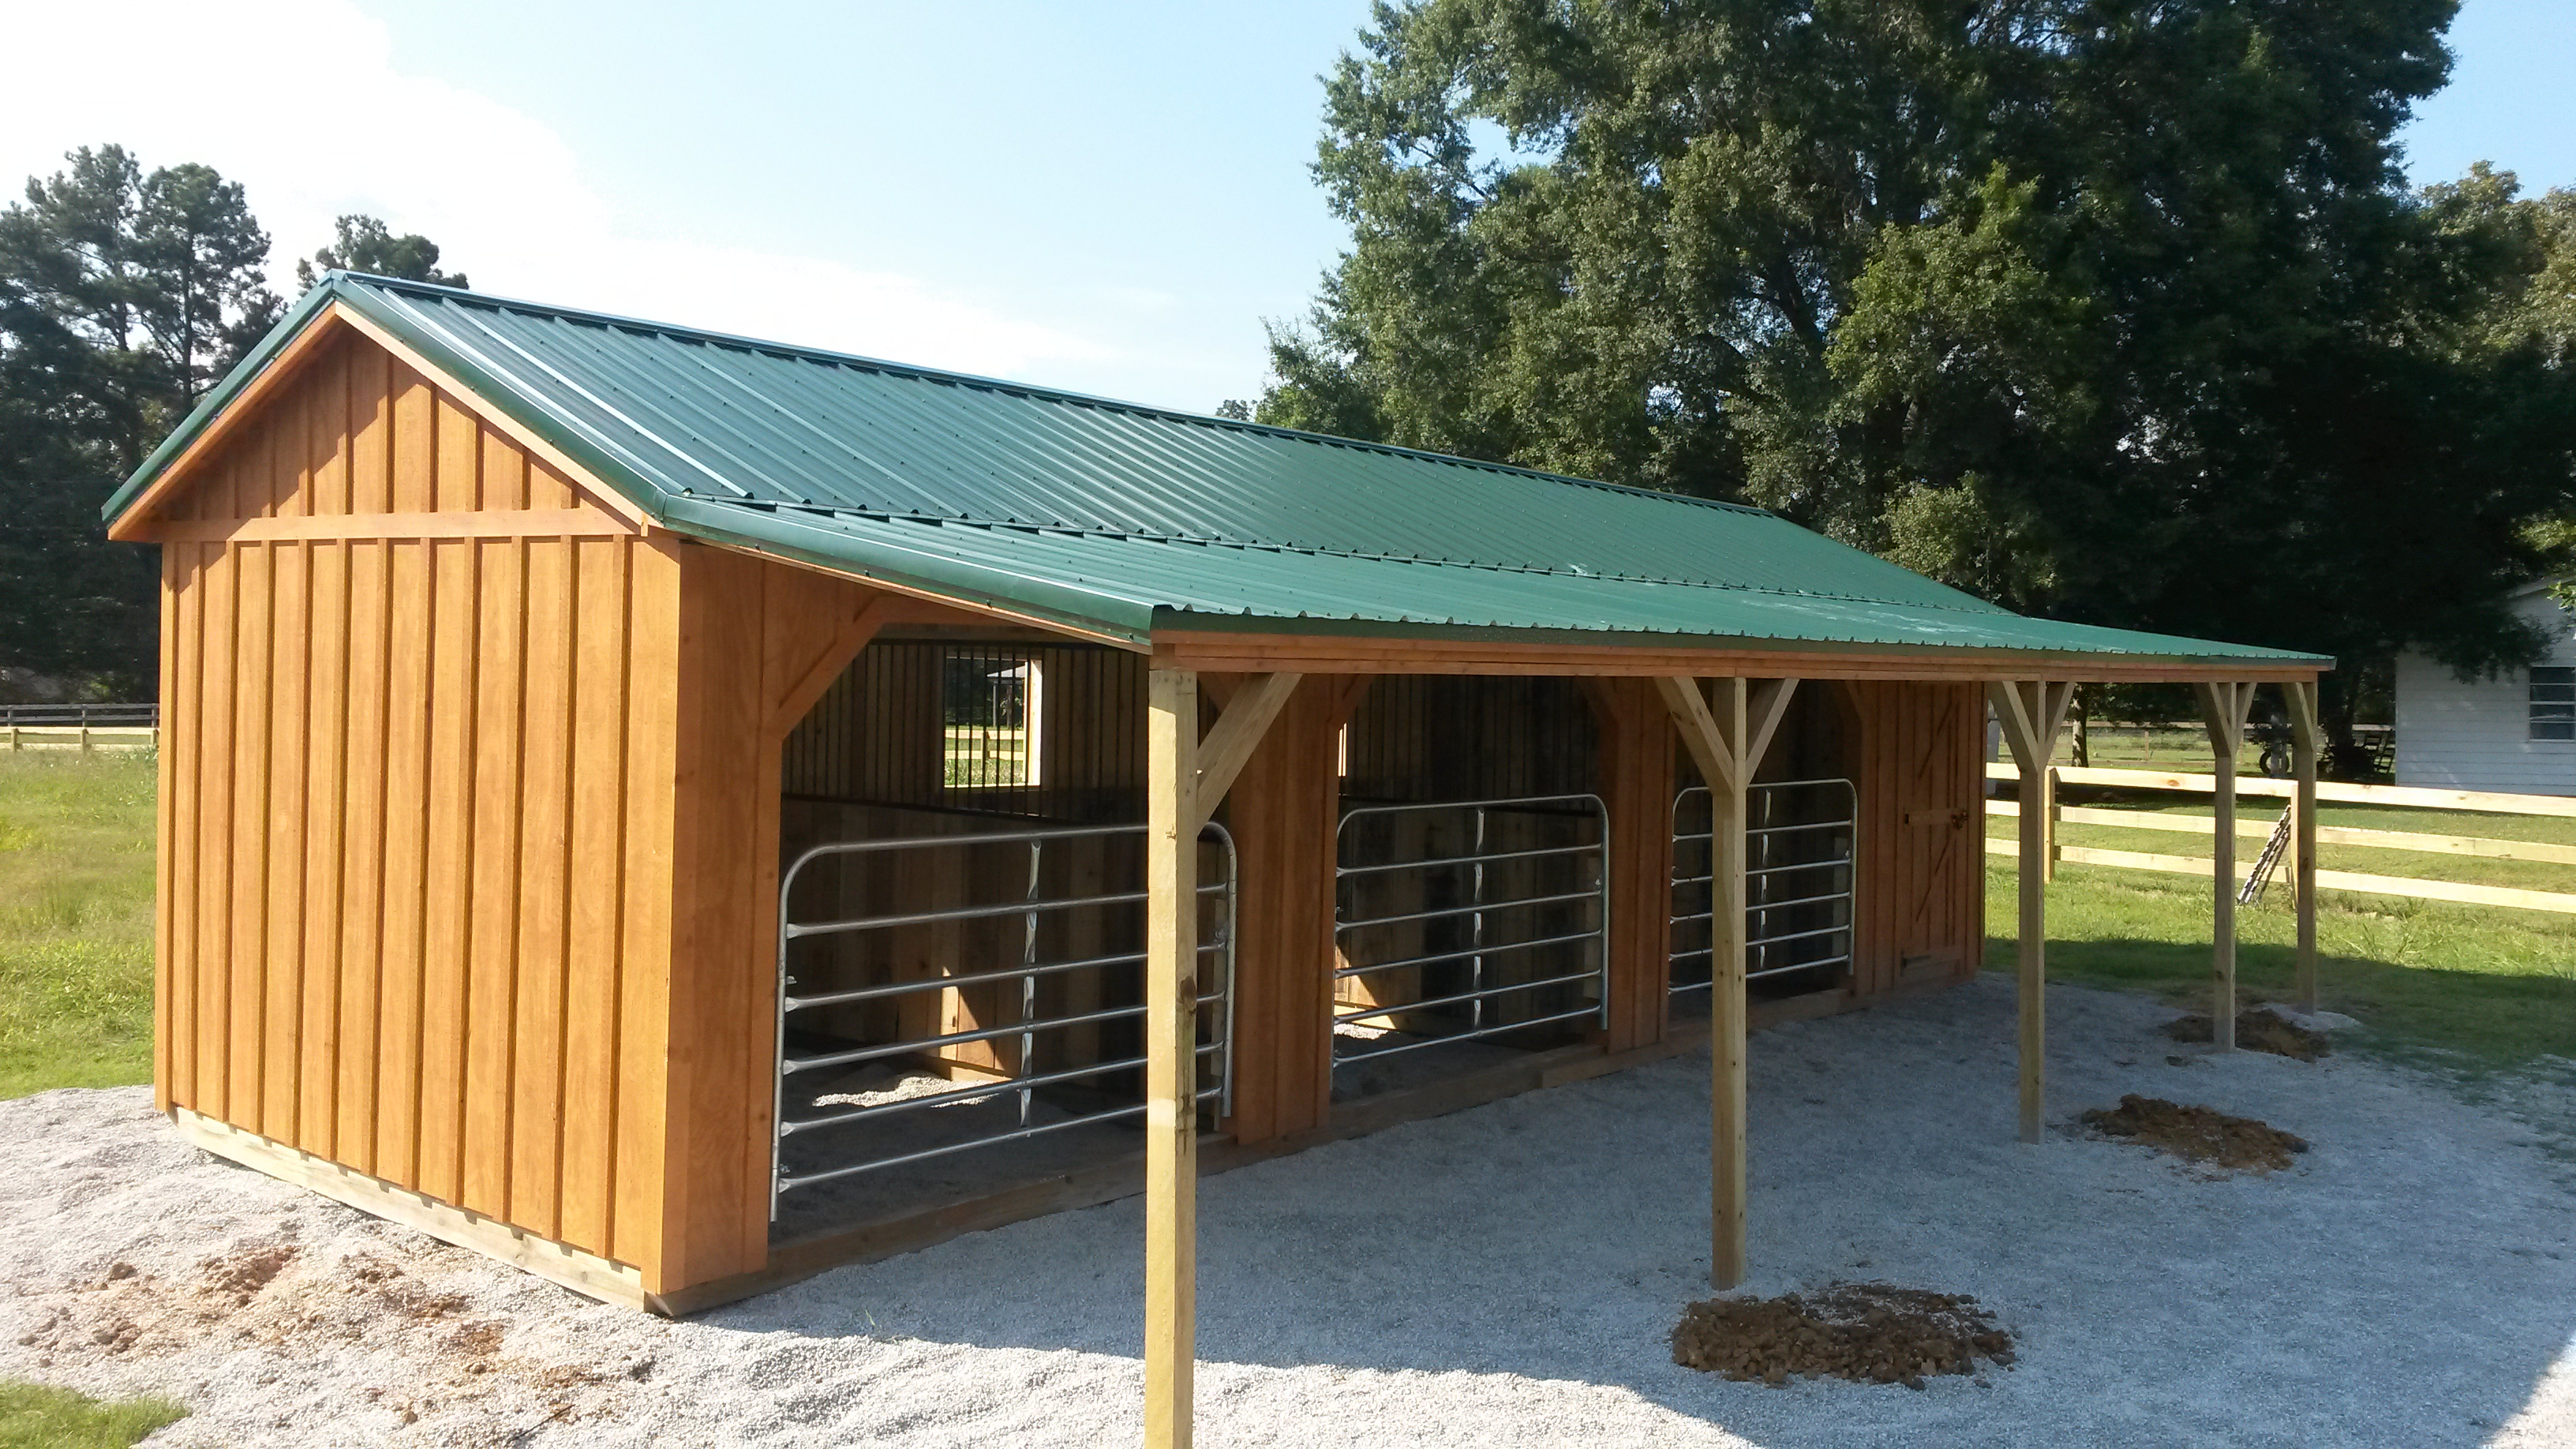 Animal Shelters And Wood Storage Sheds Archives Sheds